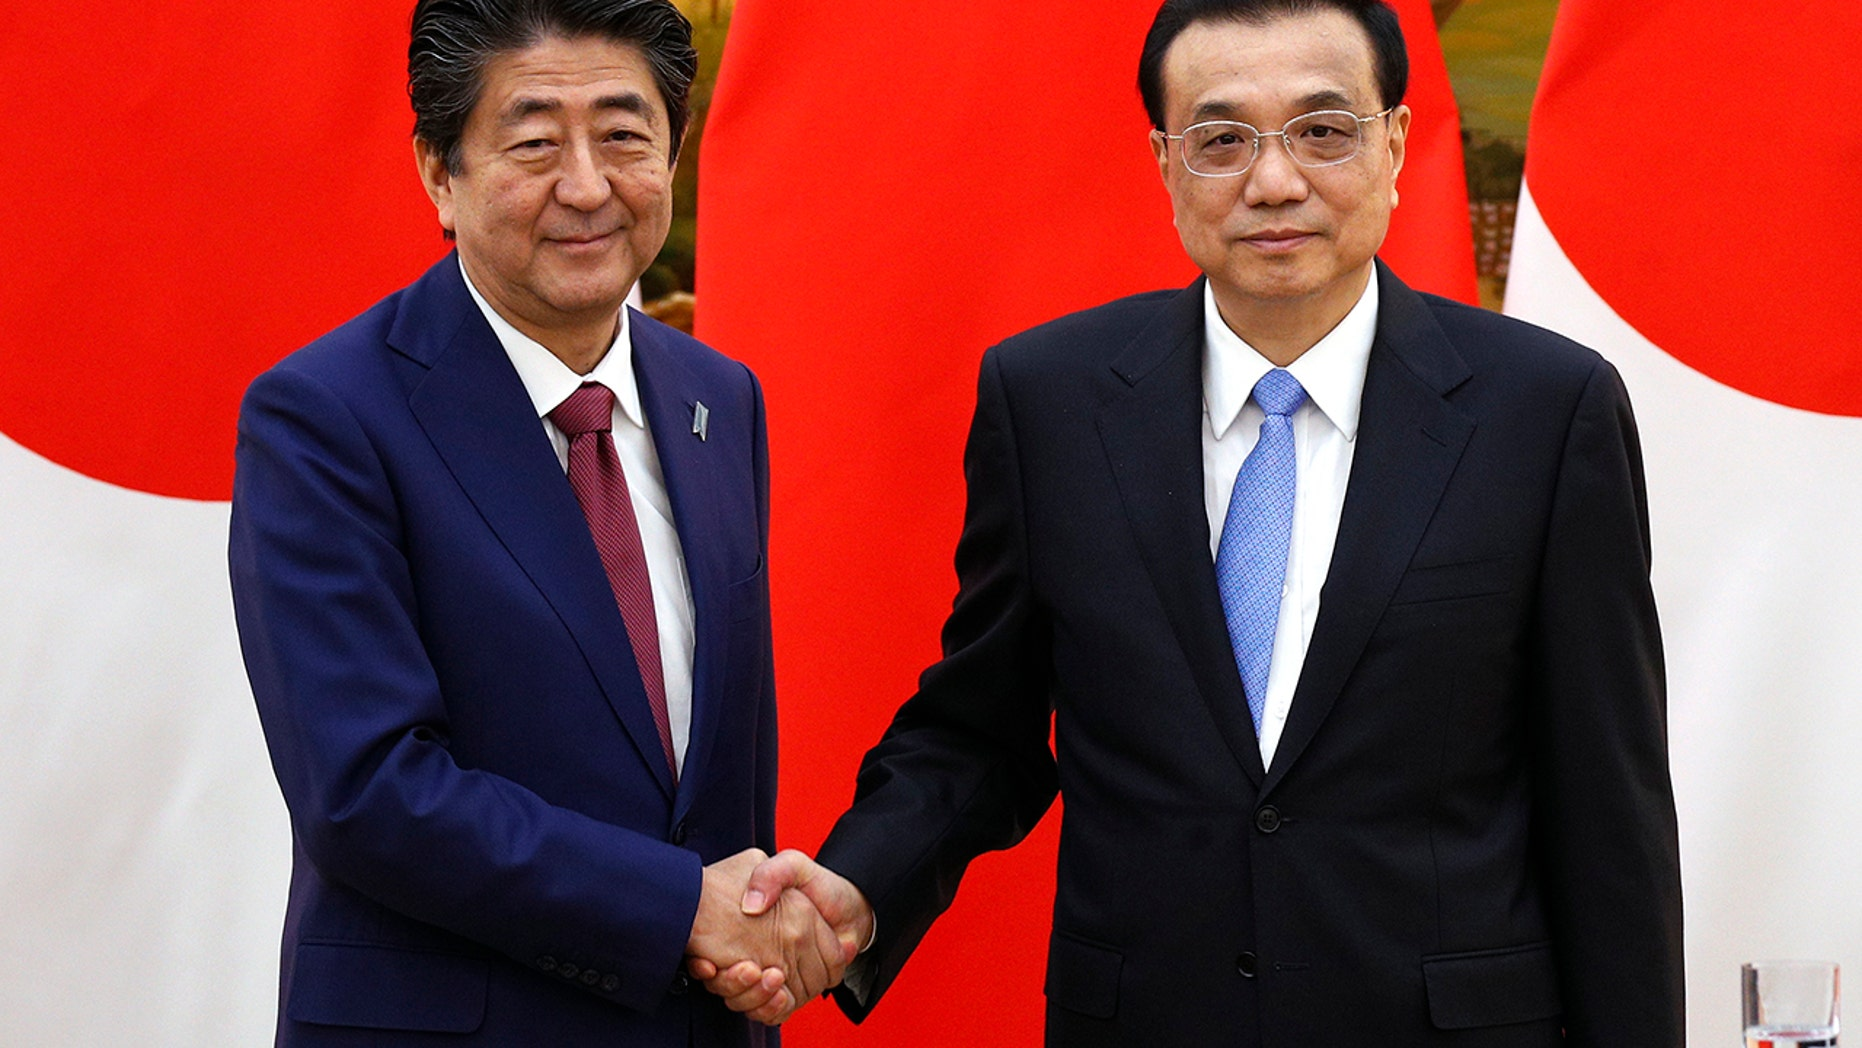 China, Japan to partner in building Asia infrastructure